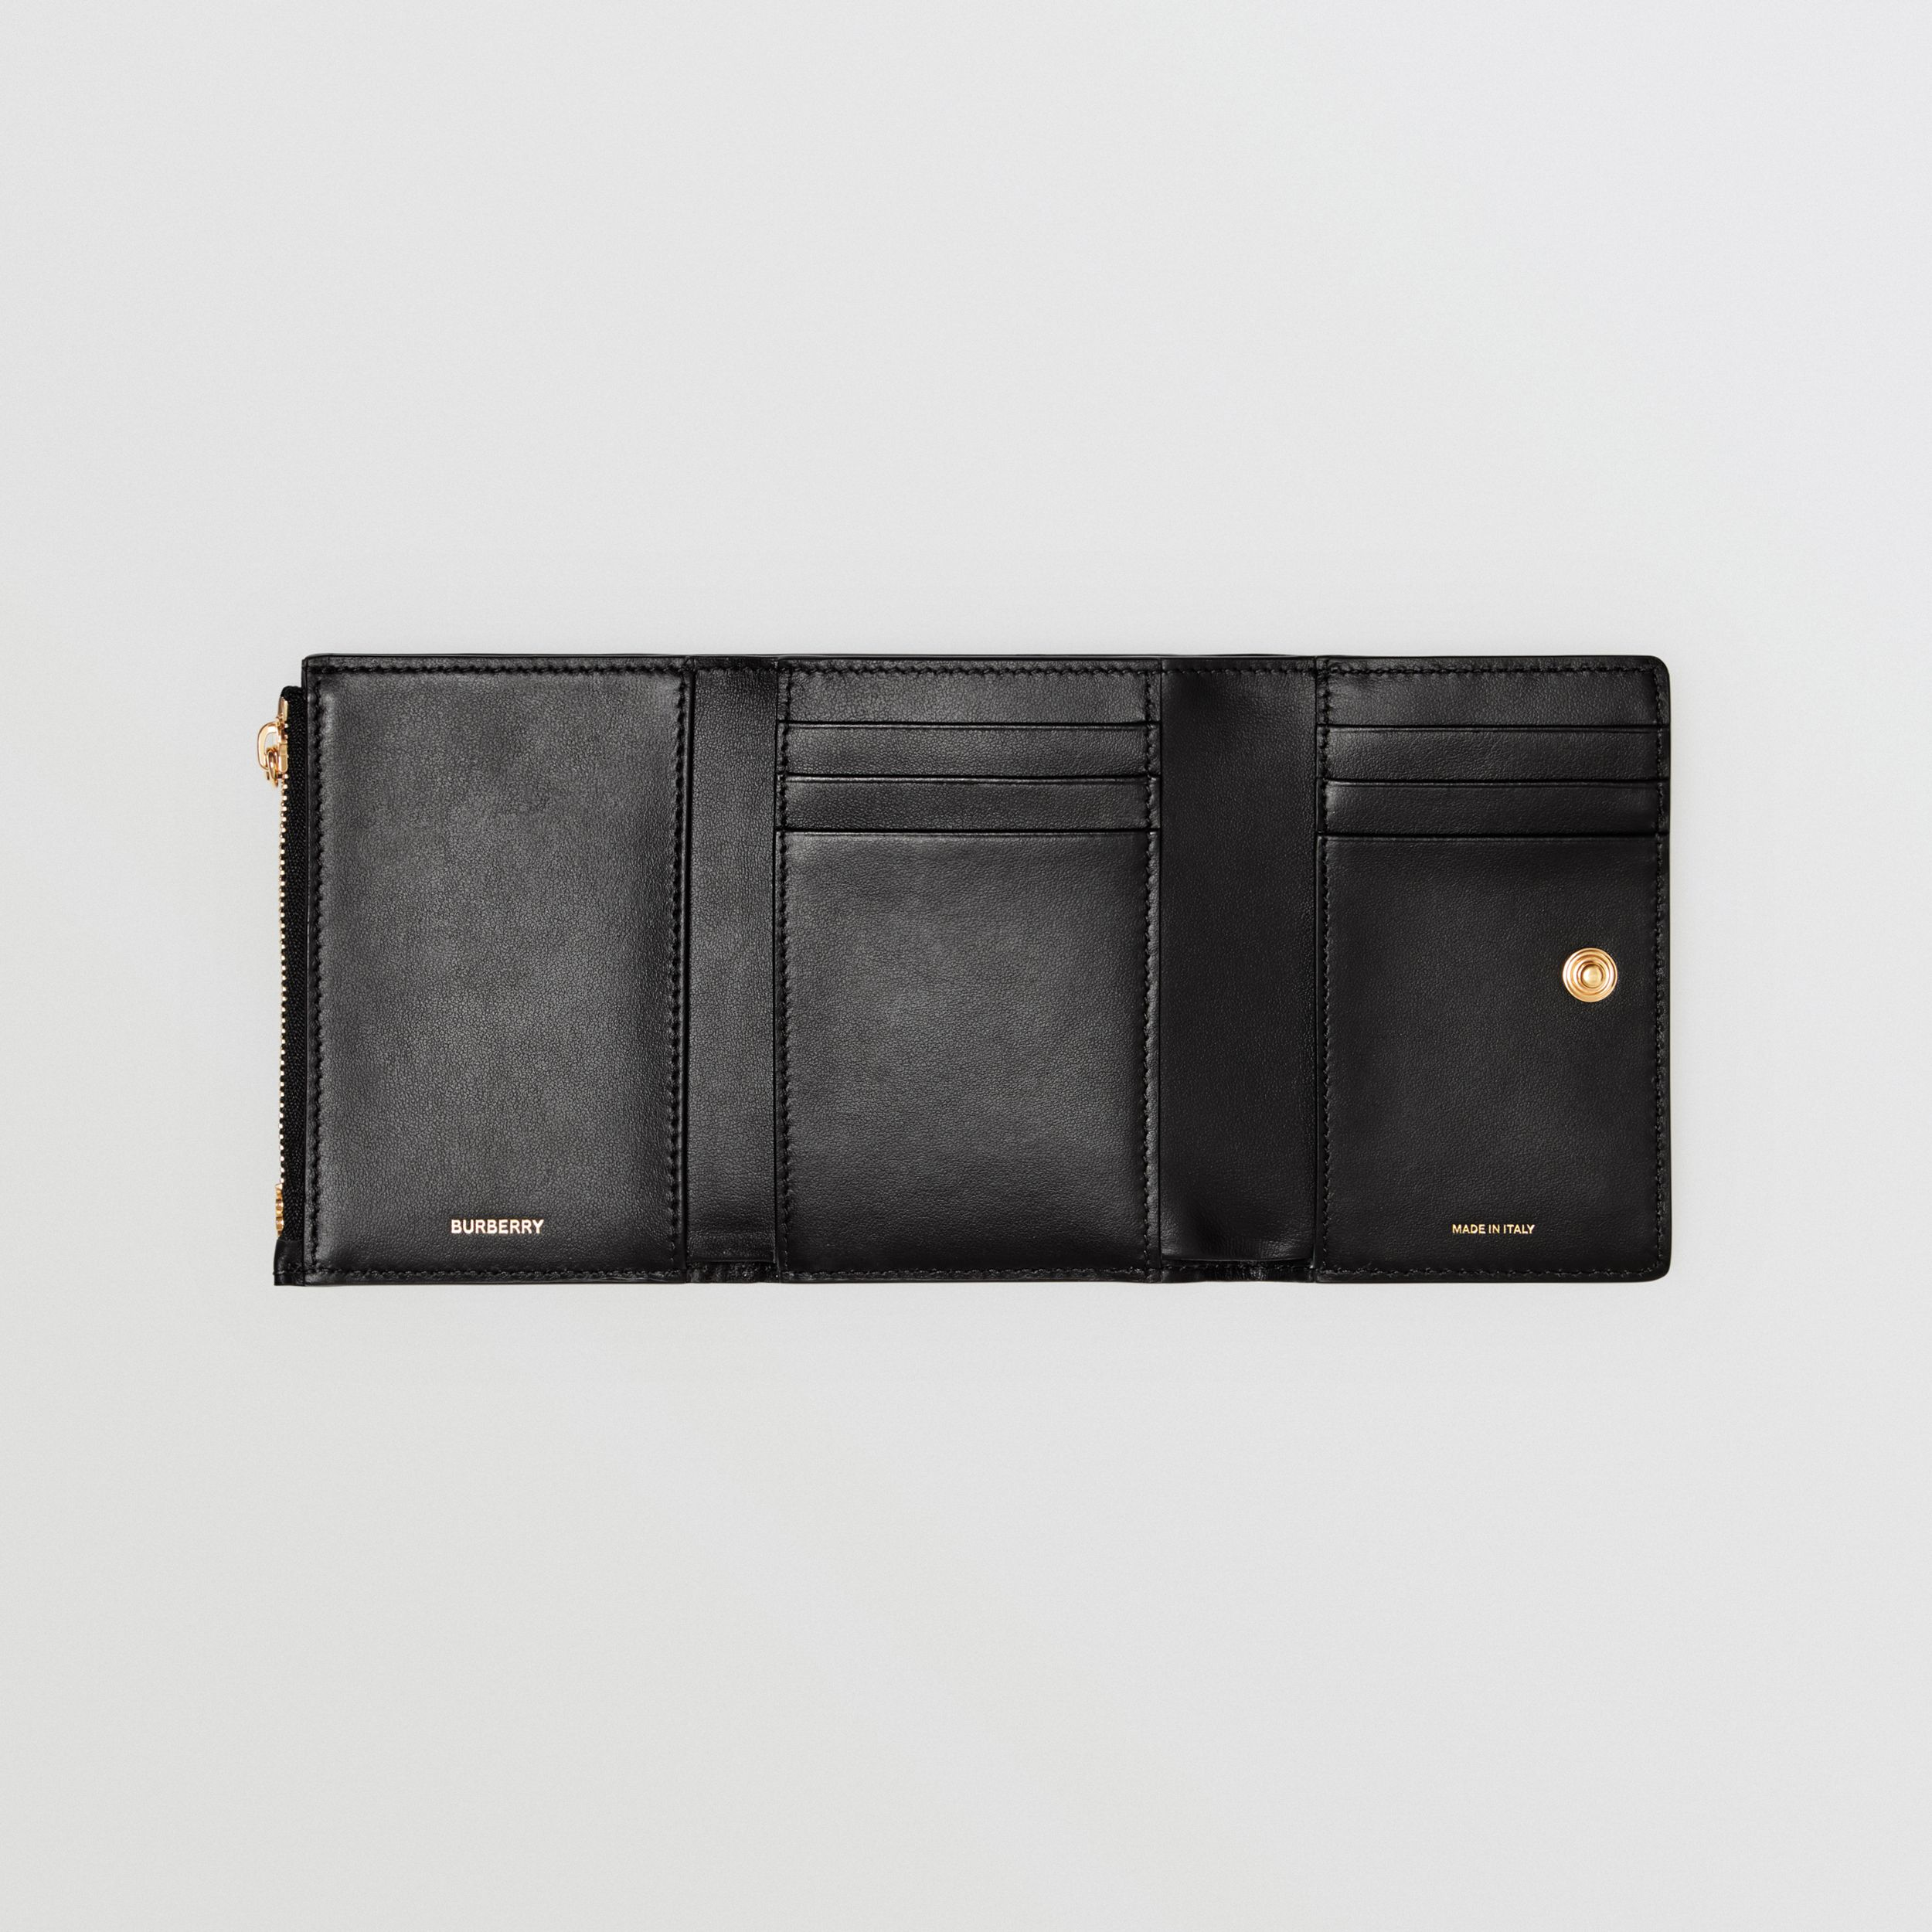 Small Monogram Leather Folding Wallet in Black - Men | Burberry - 3